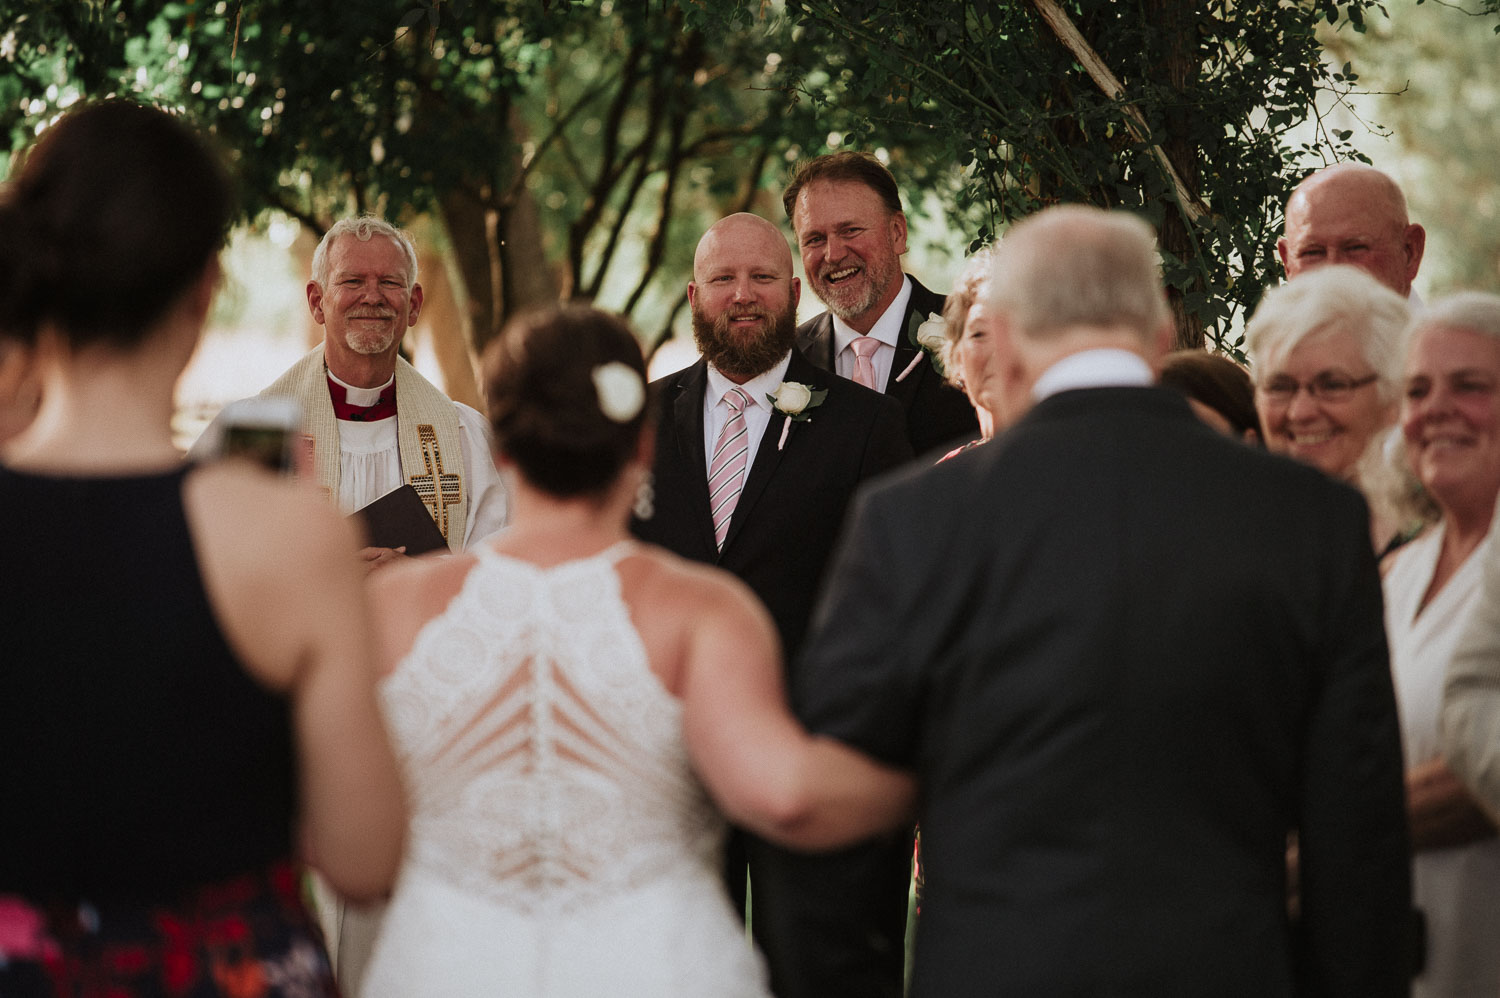 Grooms reaction as he sees his bride for the first time